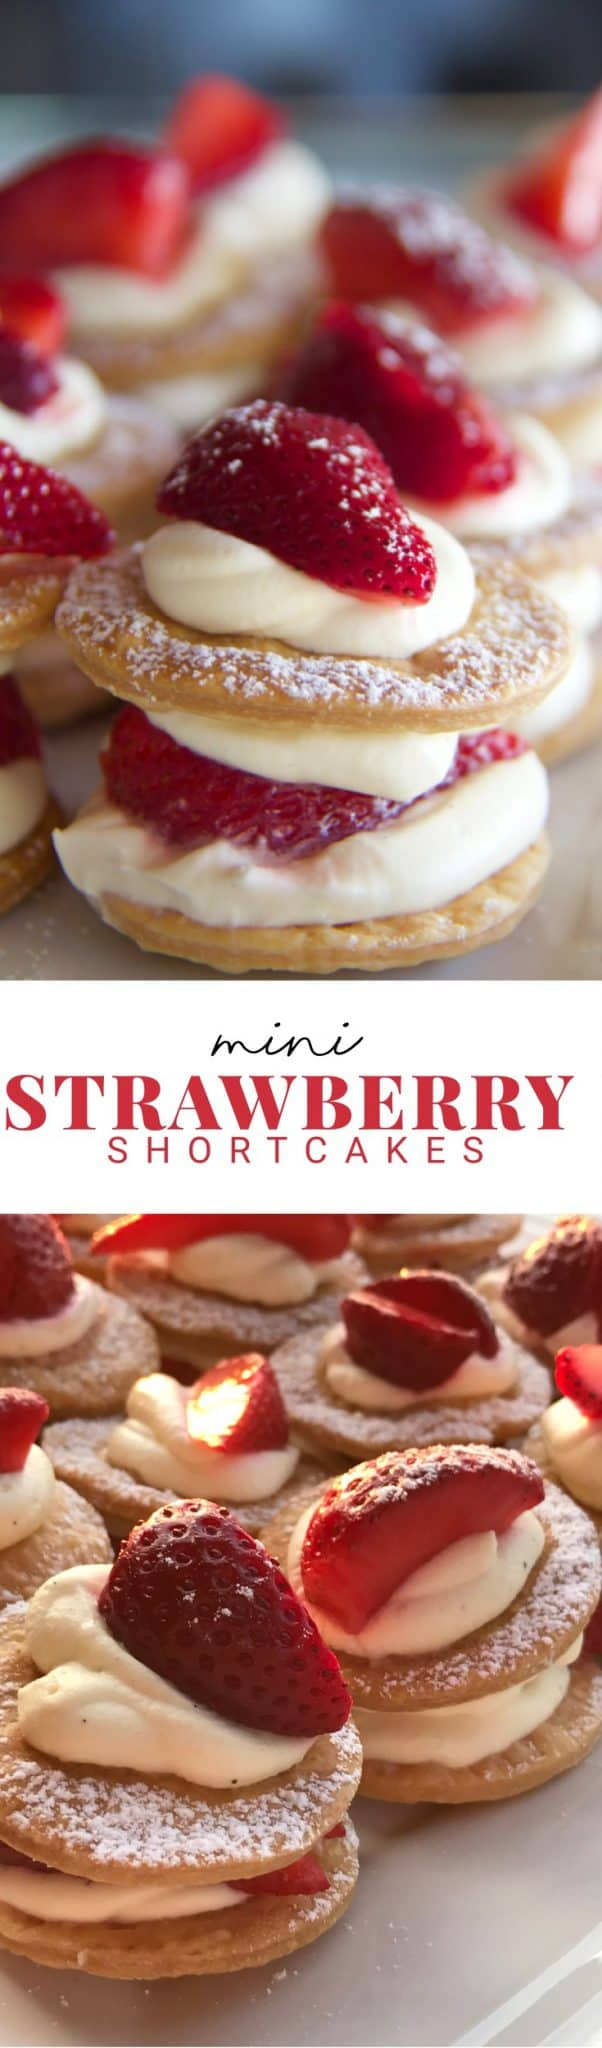 Strawberry shortcakes inspire memories of childhood. This easy recipe makes 16 mini strawberry shortcakes in just 25 minutes.